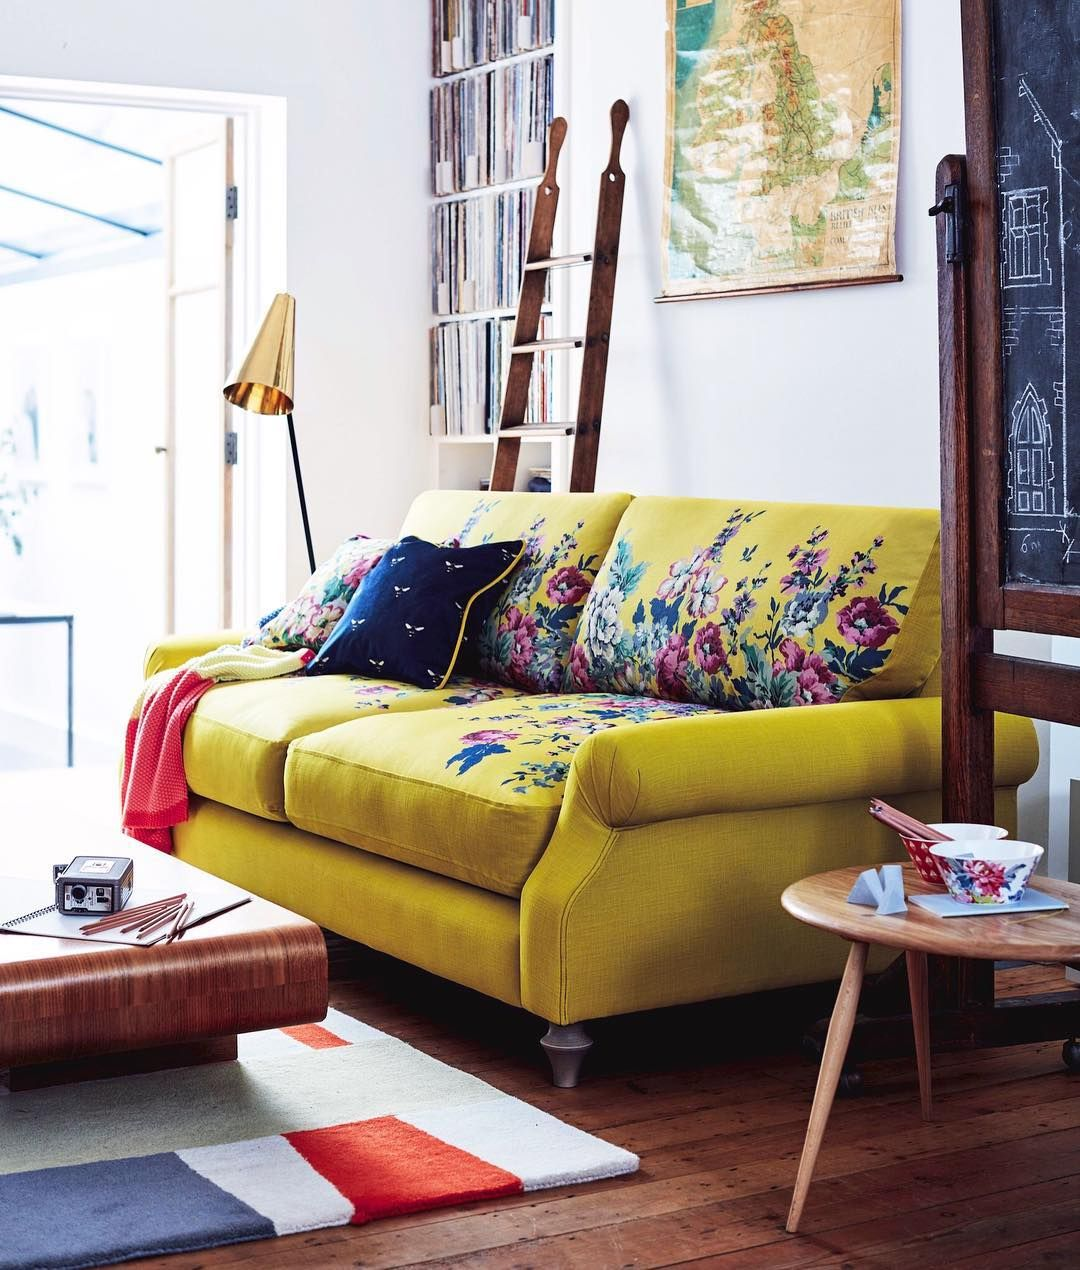 Pleasing Joules Cambridge Sofa From Dfs Reference Number 934129 Andrewgaddart Wooden Chair Designs For Living Room Andrewgaddartcom